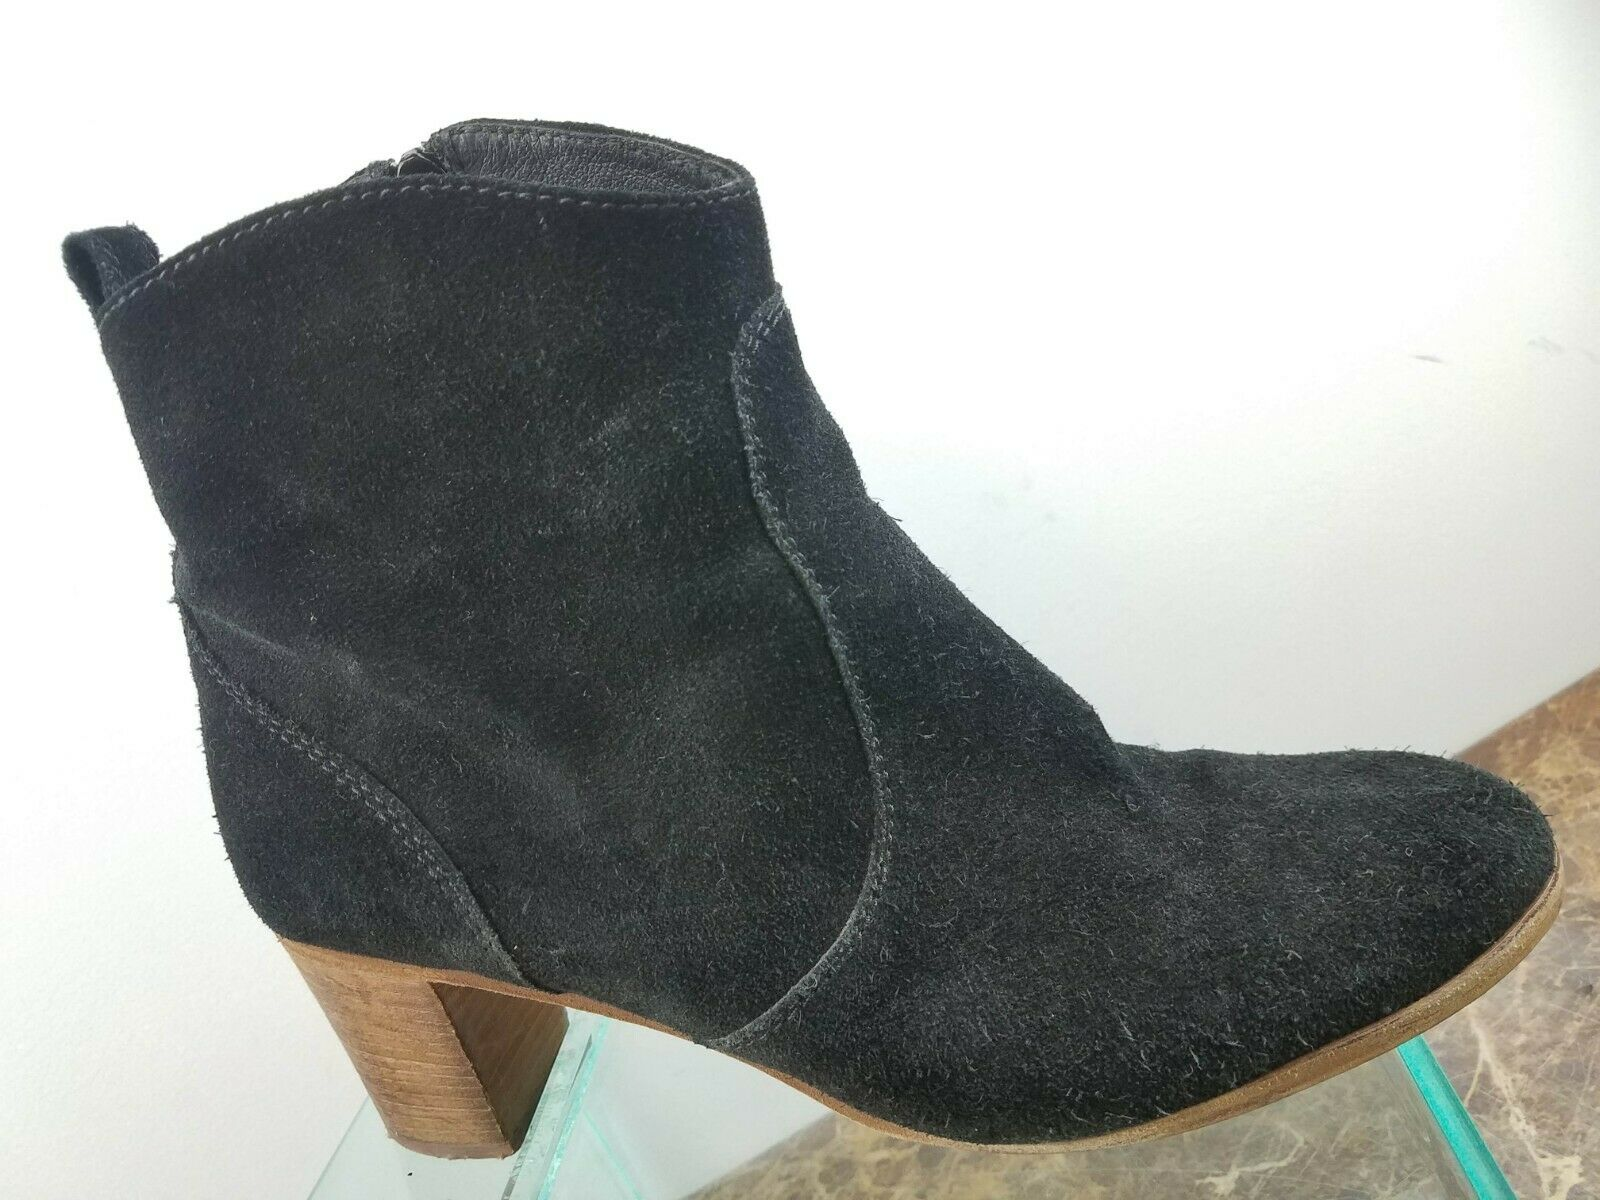 J. Crew Black Suede Leather Block Heel Round Toe Ankle Booties Womens 11M